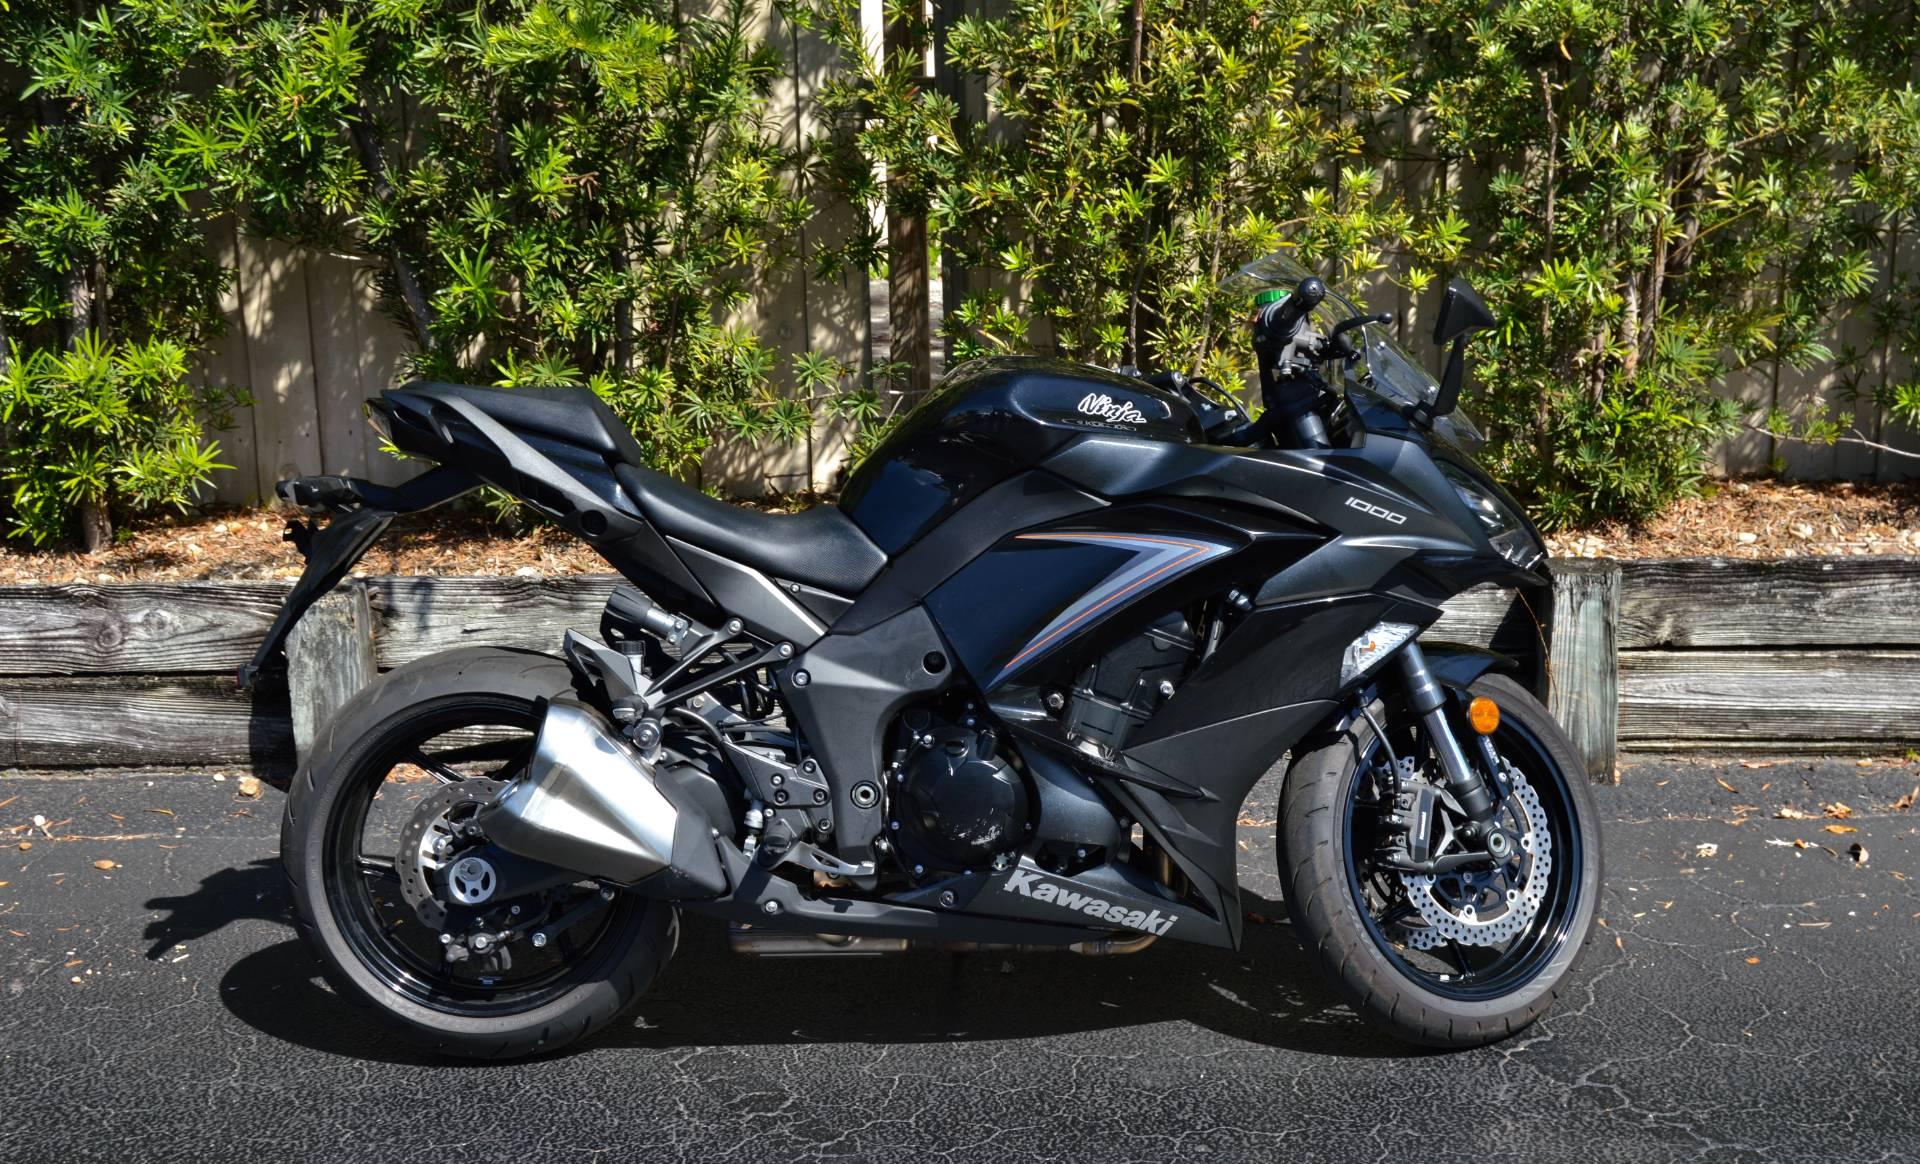 2019 Kawasaki Ninja 1000 ABS in Boca Raton, Florida - Photo 1